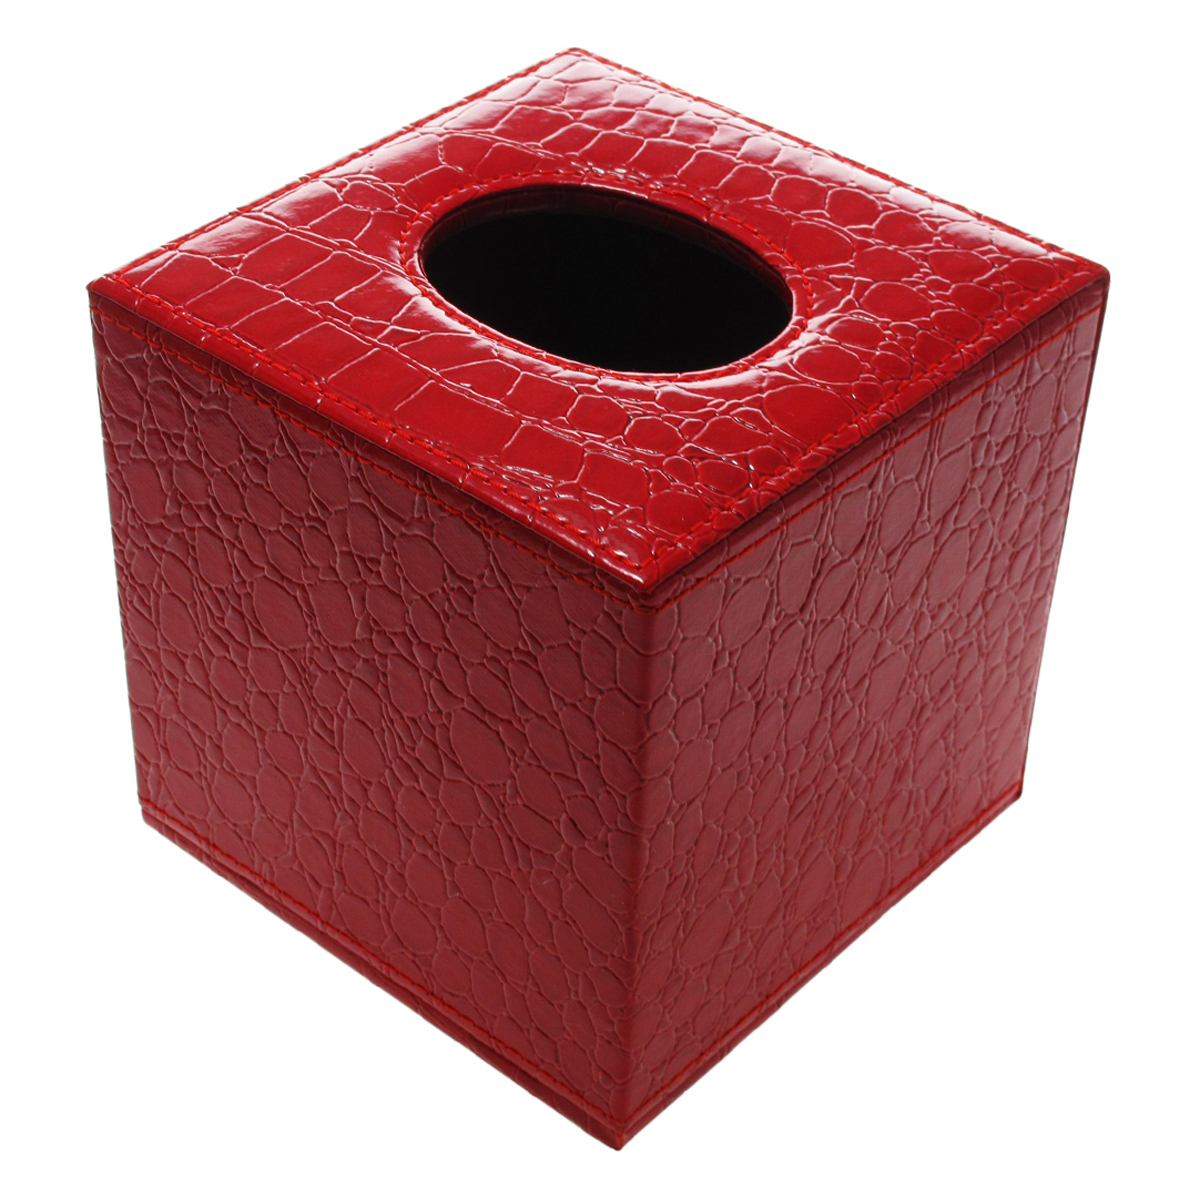 Decorative Red Gator Faux Leather Square Tissue Holder with  Magnetic Bottom Closure